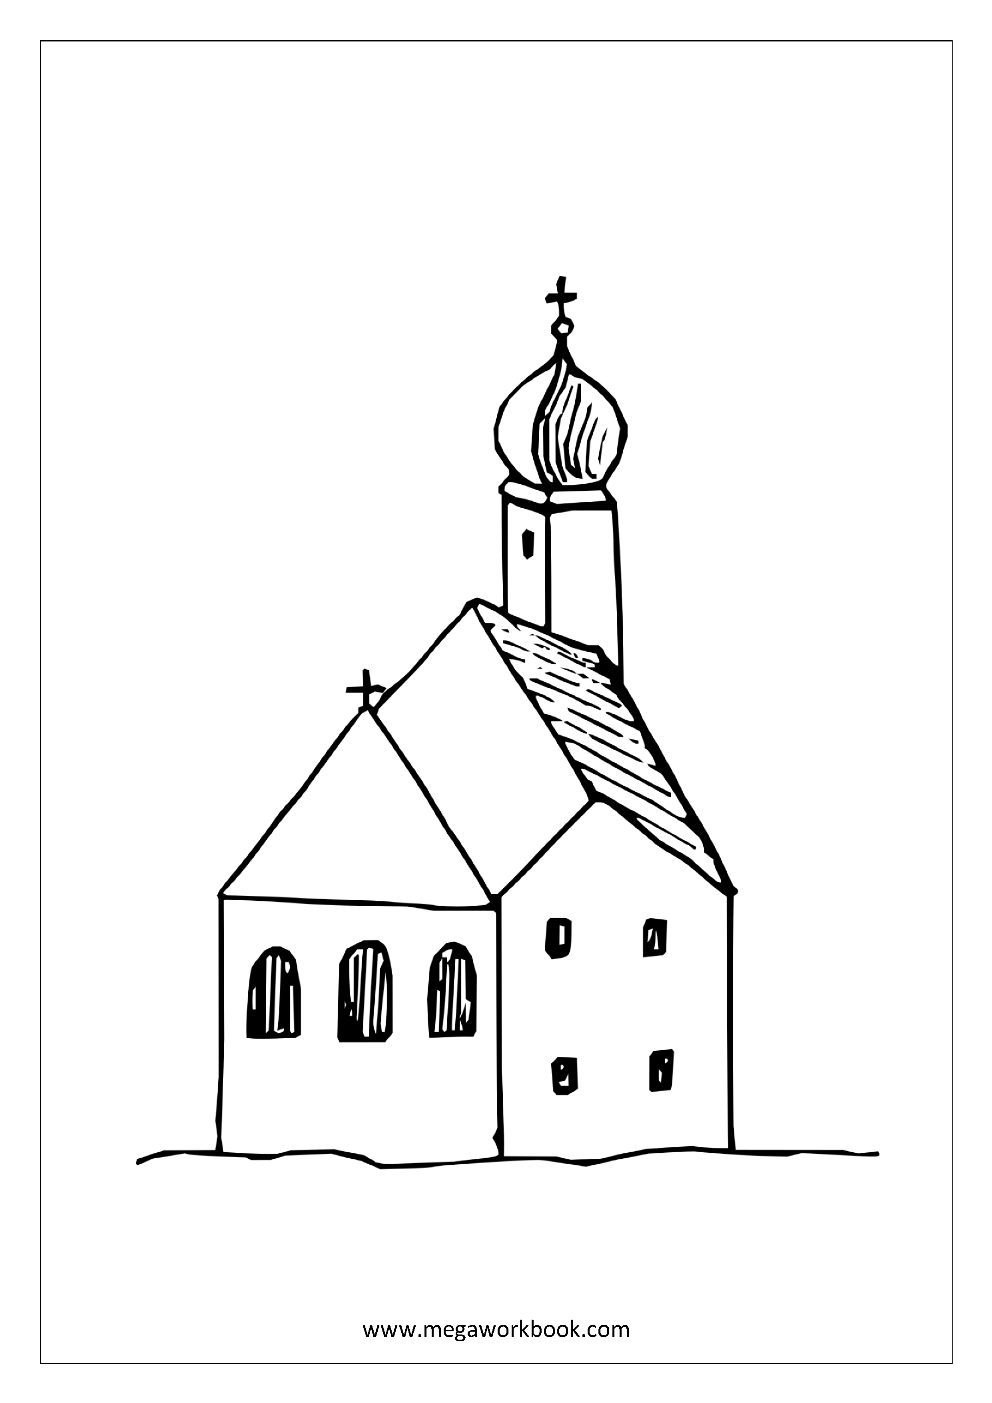 Free Printable Christmas Coloring Pages For Kindergarten And